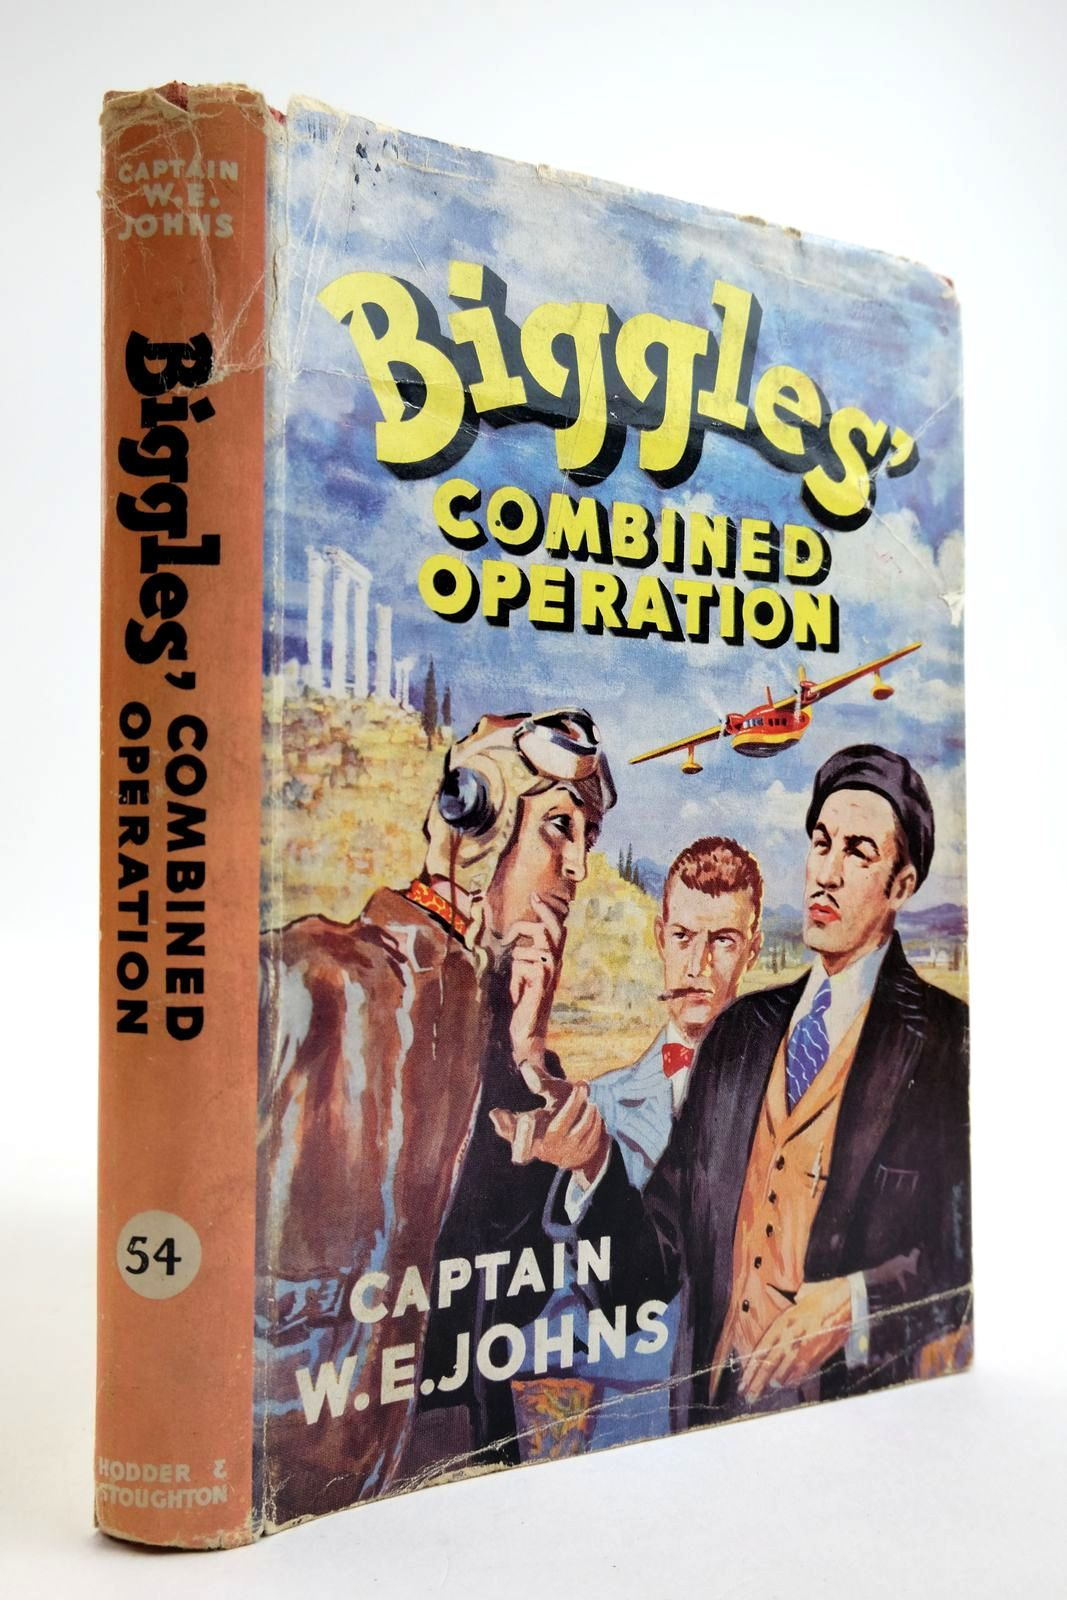 Photo of BIGGLES' COMBINED OPERATION written by Johns, W.E. illustrated by Stead,  published by Hodder & Stoughton (STOCK CODE: 2134118)  for sale by Stella & Rose's Books